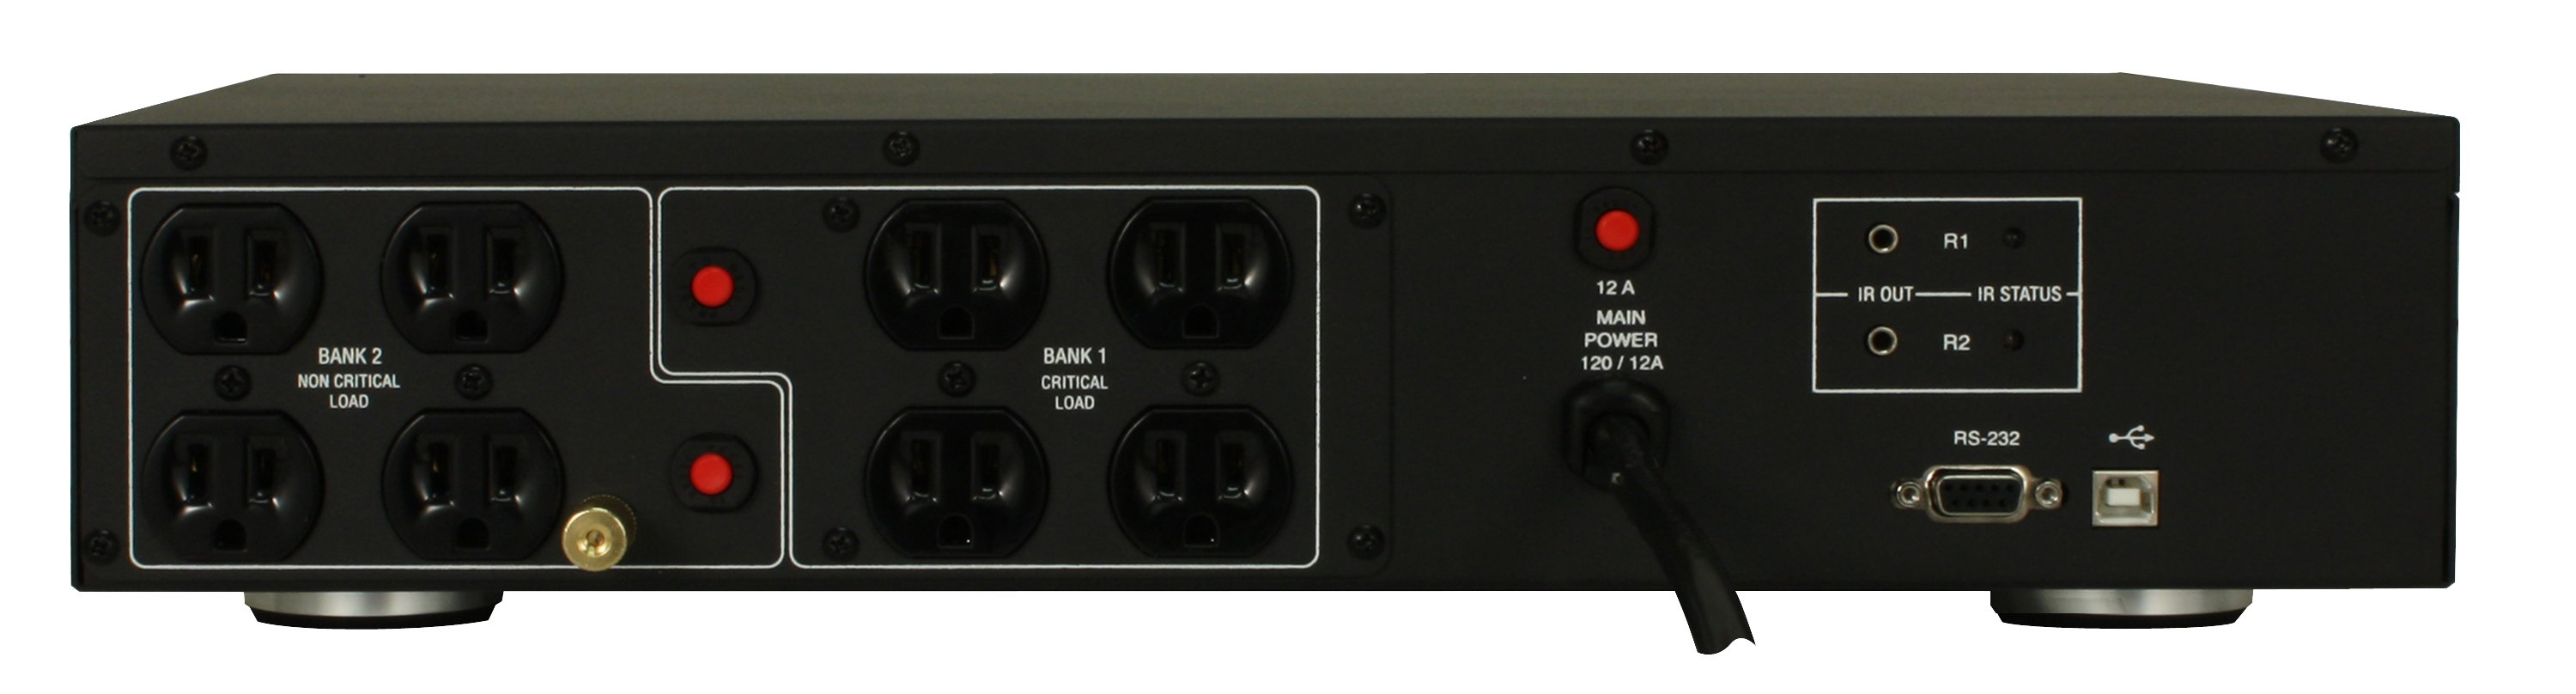 Uninterruptable Power Supply, Voltage Regulator/Power Conditioner